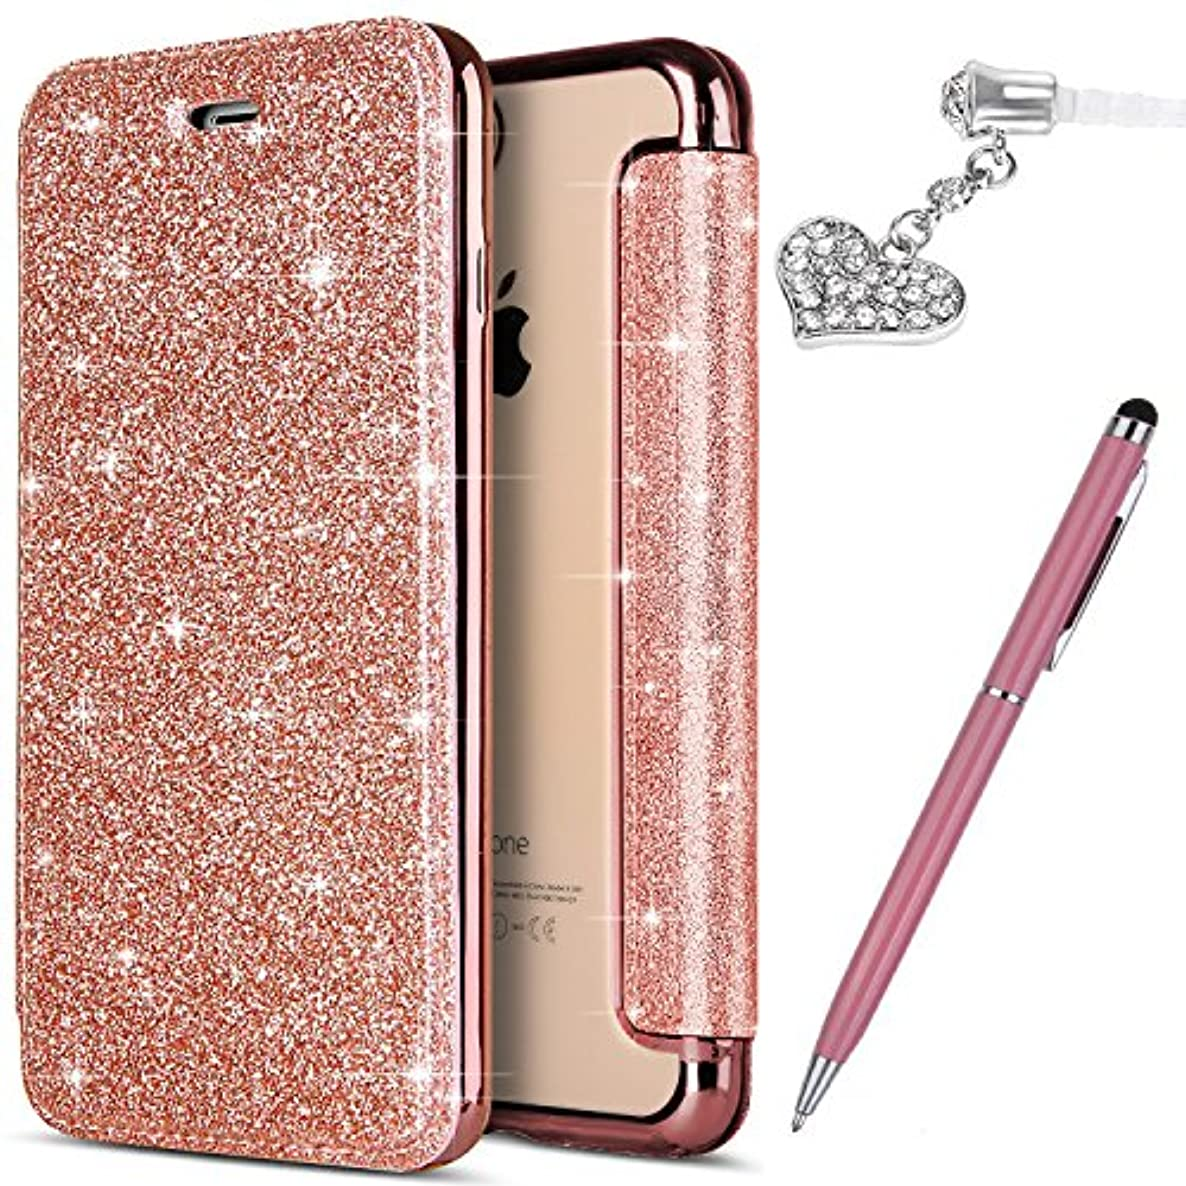 ikasus iPhone 8 Plus Case,iPhone 7 Plus Case, Shiny Glitter Plating TPU PU Leather Flip Wallet Pouch Bookstyle Cover & Card Slots Case Cover +Touch Pen Dust Plug for iPhone 8 Plus / 7 Plus,Rose Gold